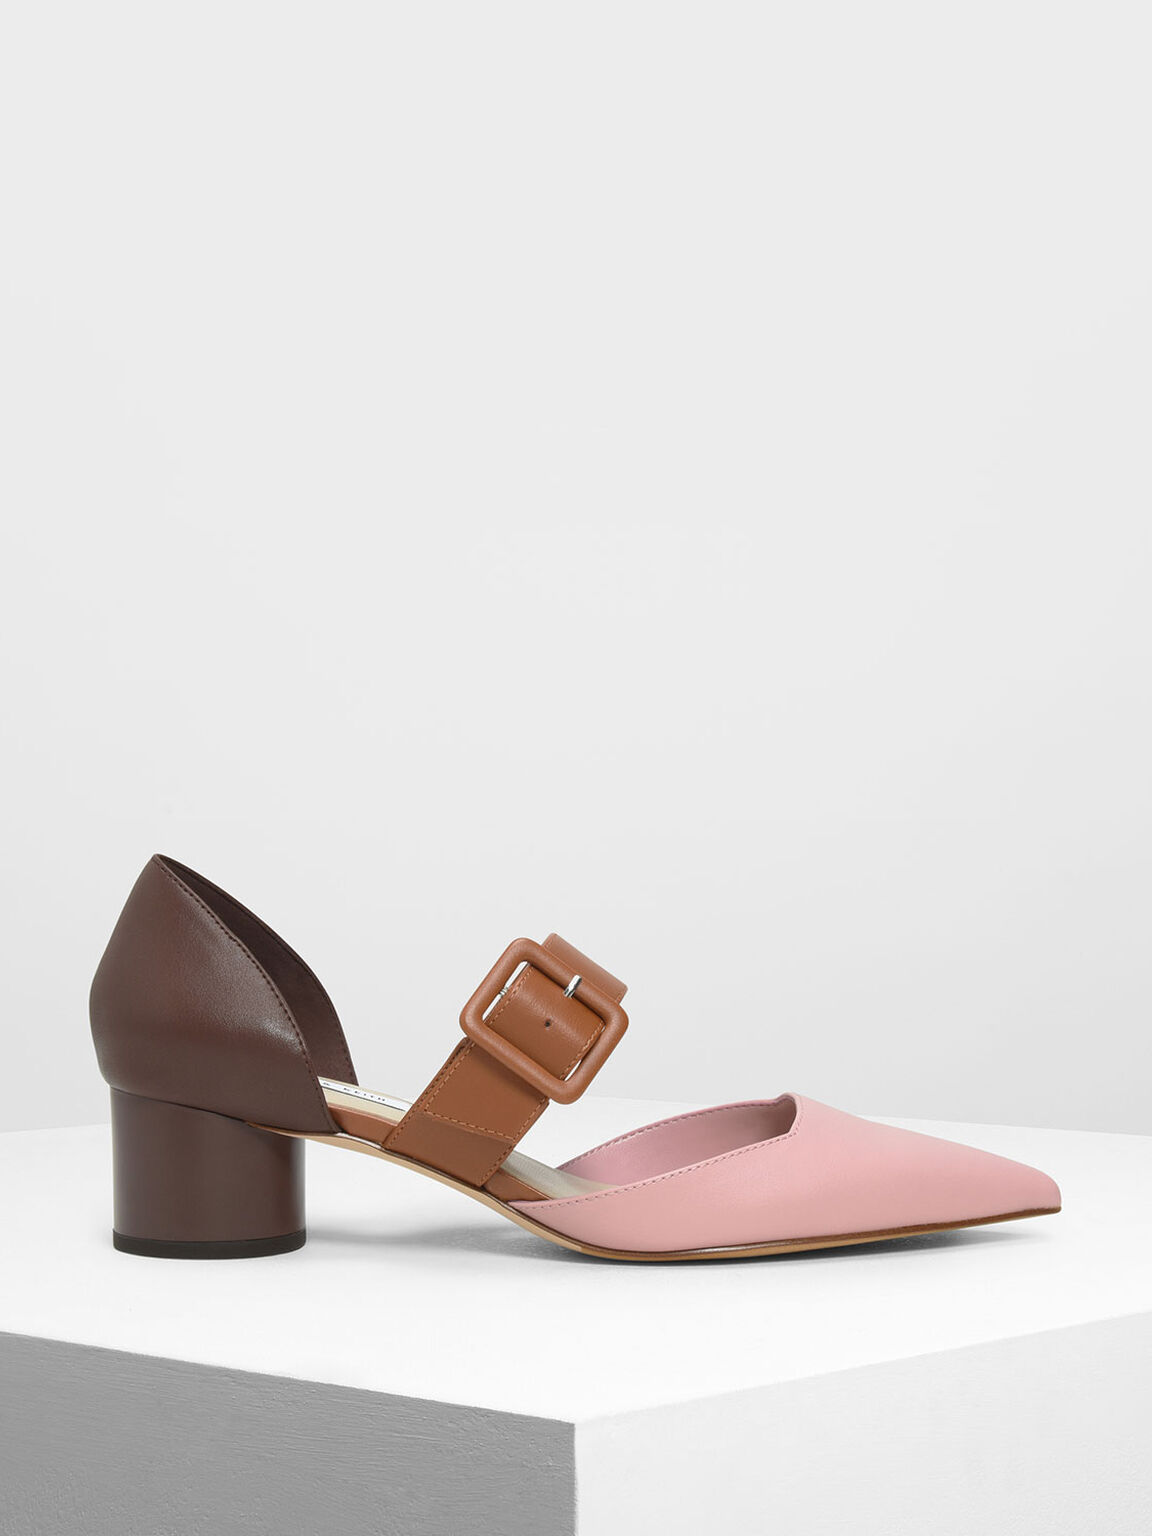 Mary Janes Buckle Pumps, Pink, hi-res